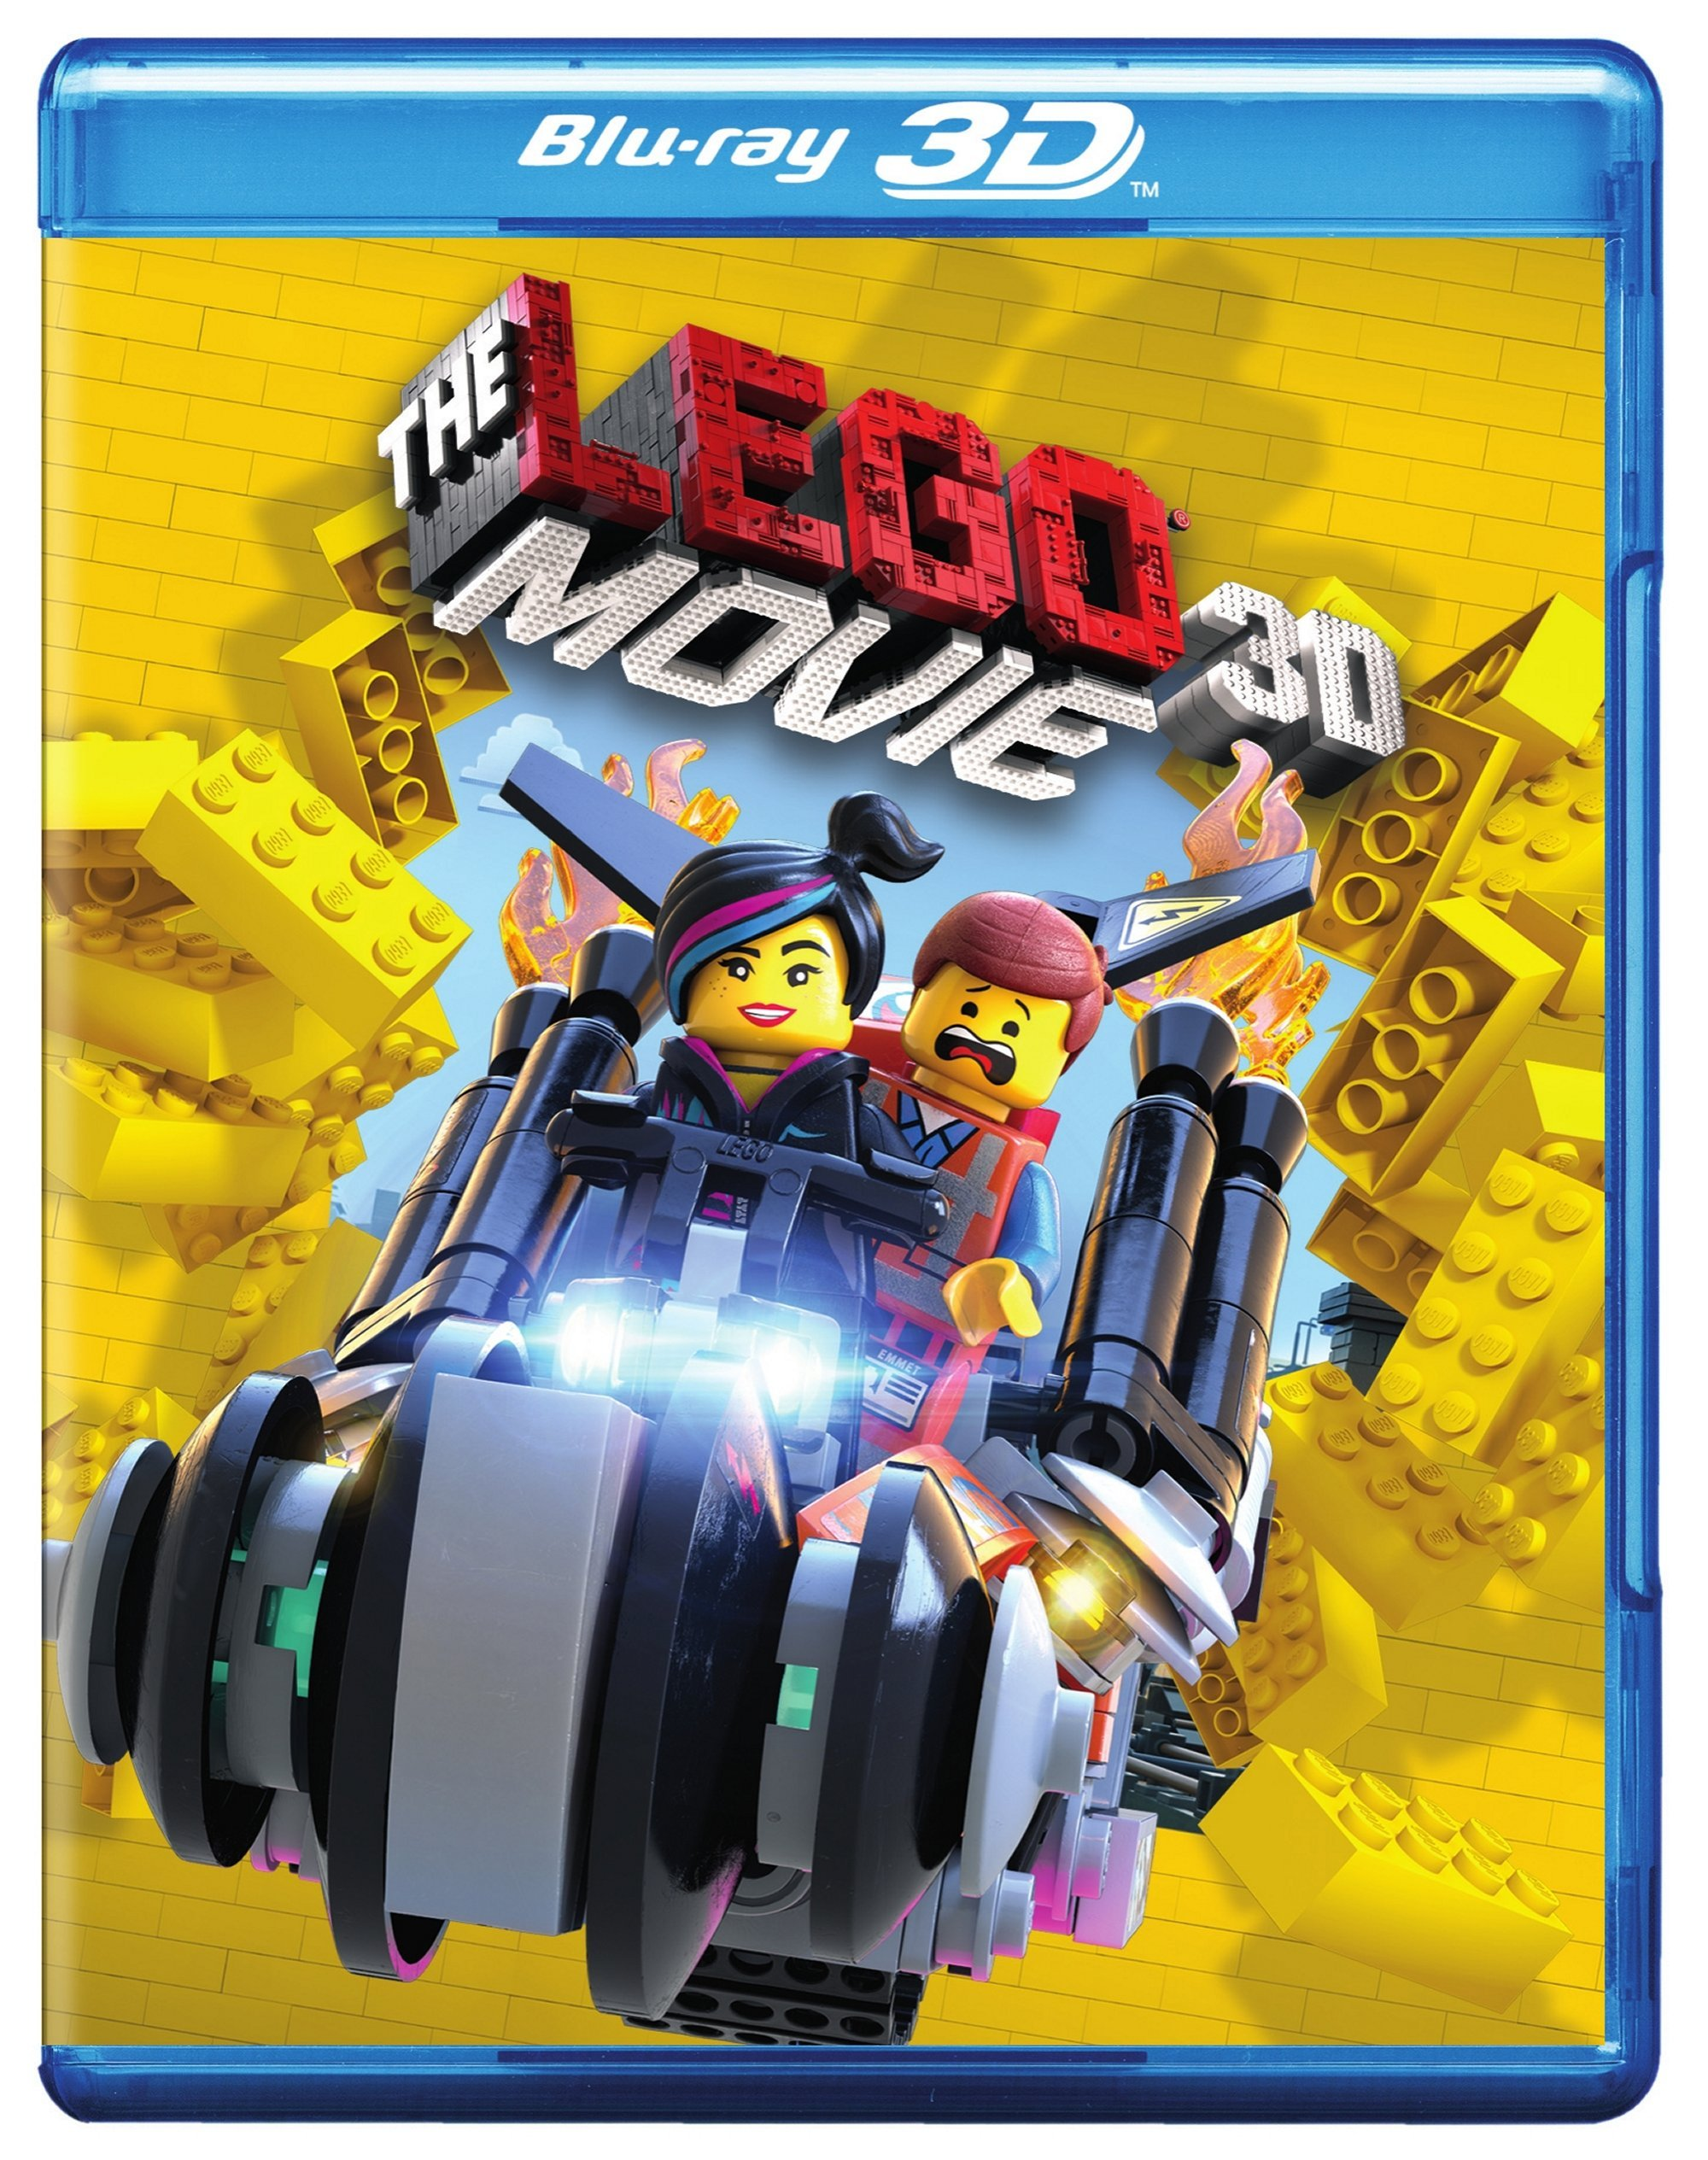 Blu-ray 3D : The Lego Movie (With DVD, With Blu-Ray, Ultraviolet Digital Copy, 3 Pack, 3 Disc)